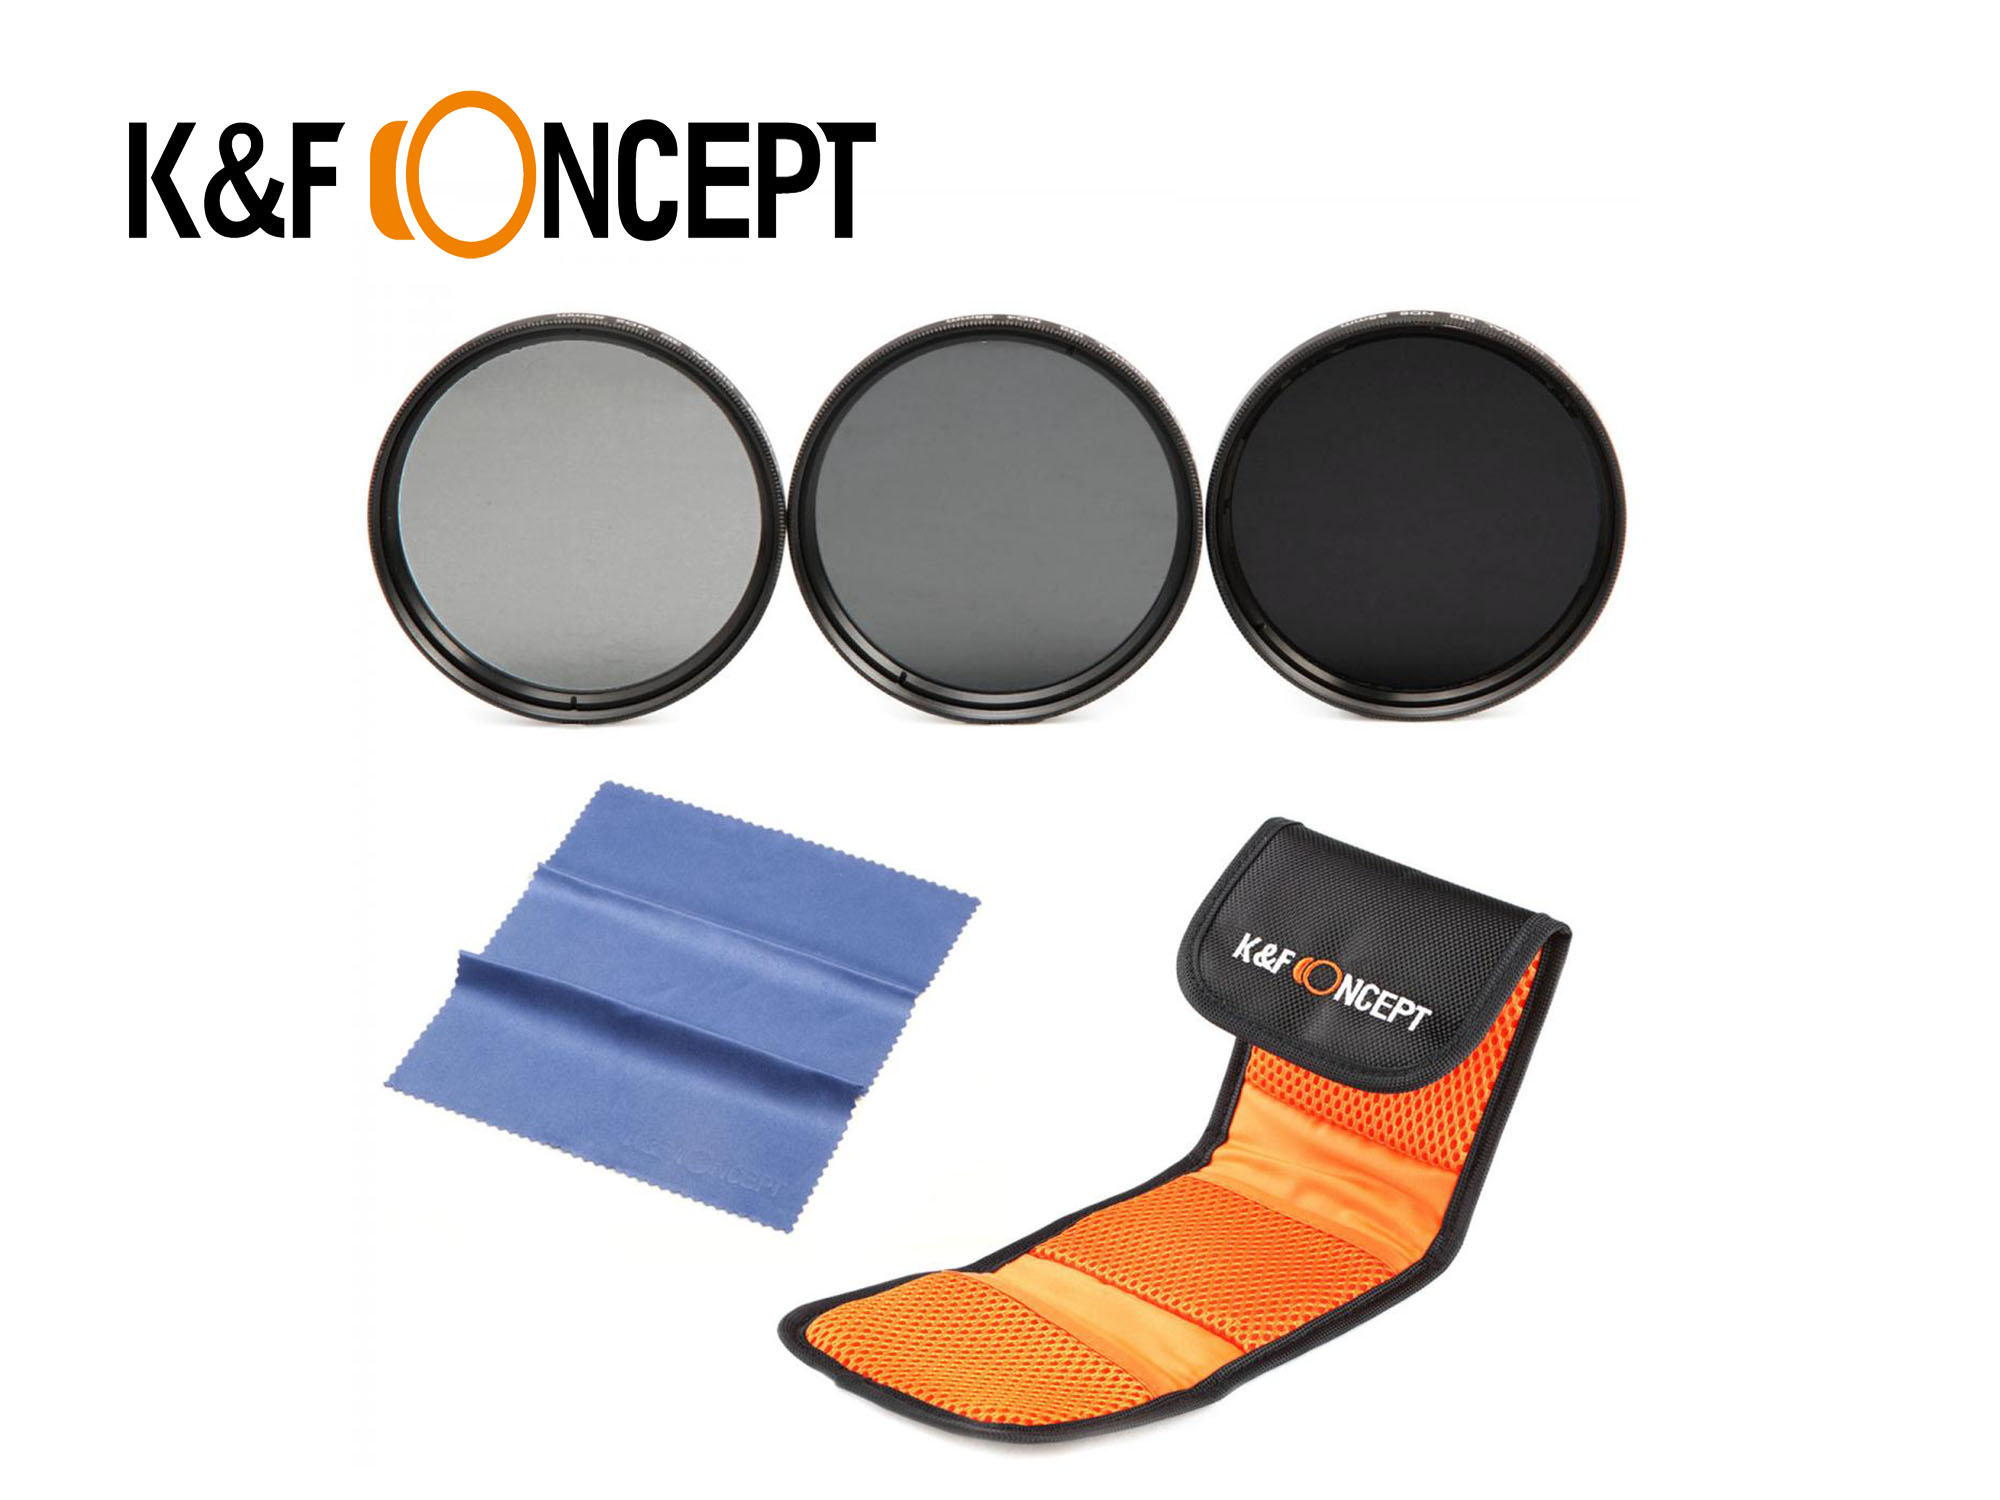 KNDSet72 - 72mm Filter Set - K&F Concept